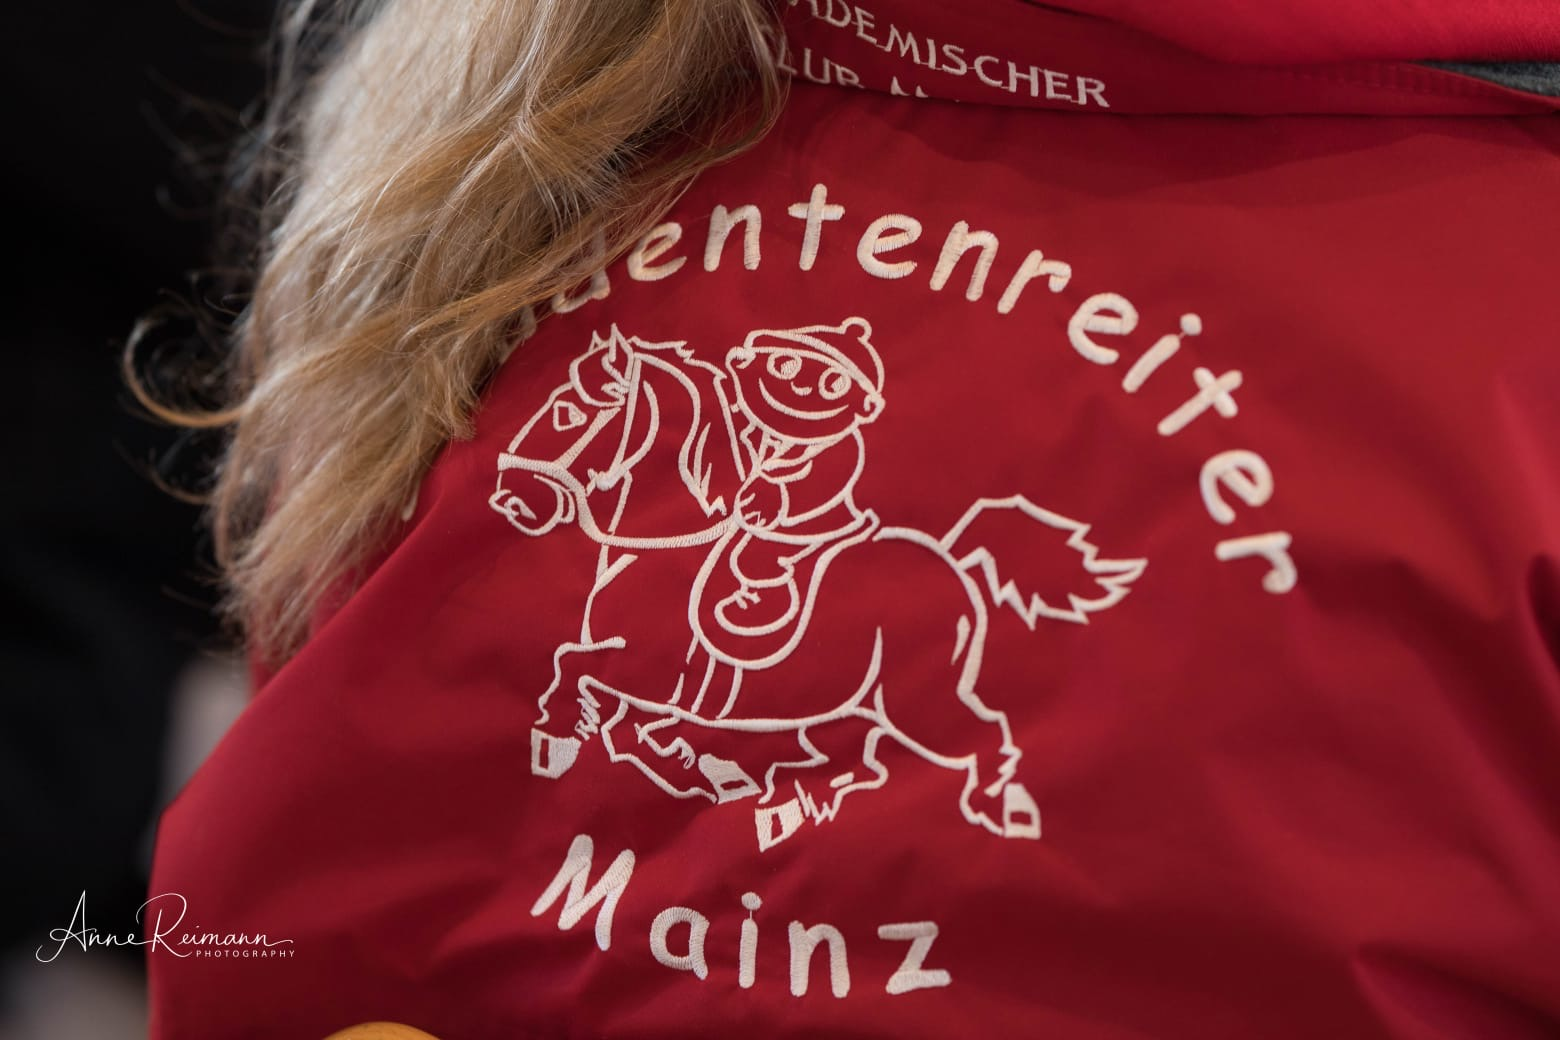 Picture of a jacket with the logo of Studentenreiter Mainz